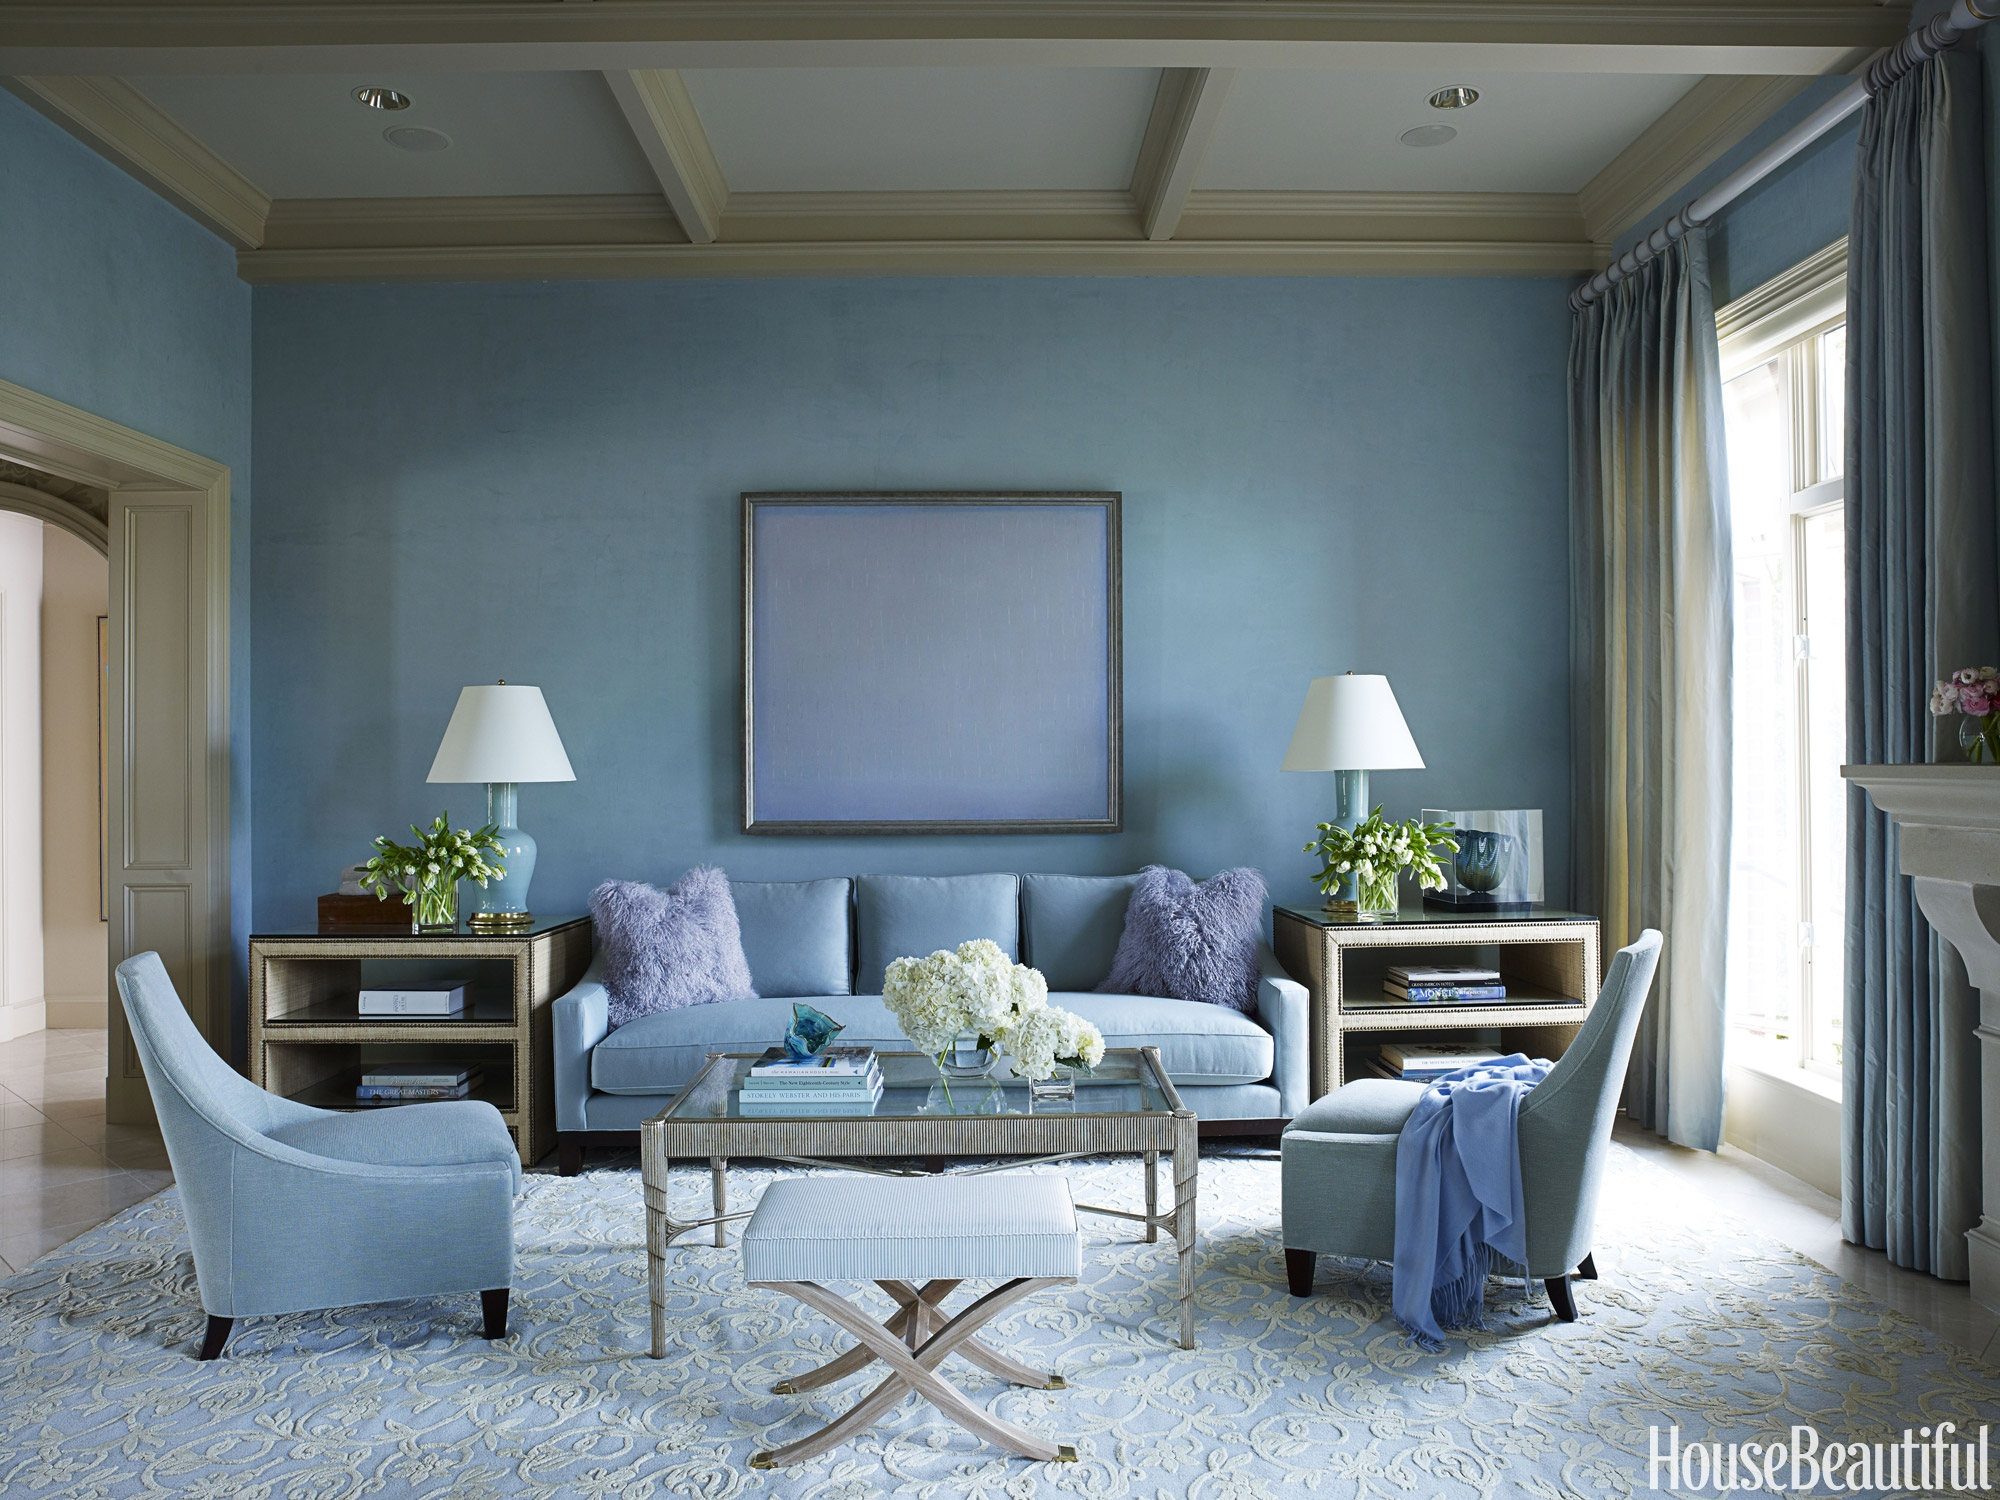 10 Living Room Decoration Ideas You